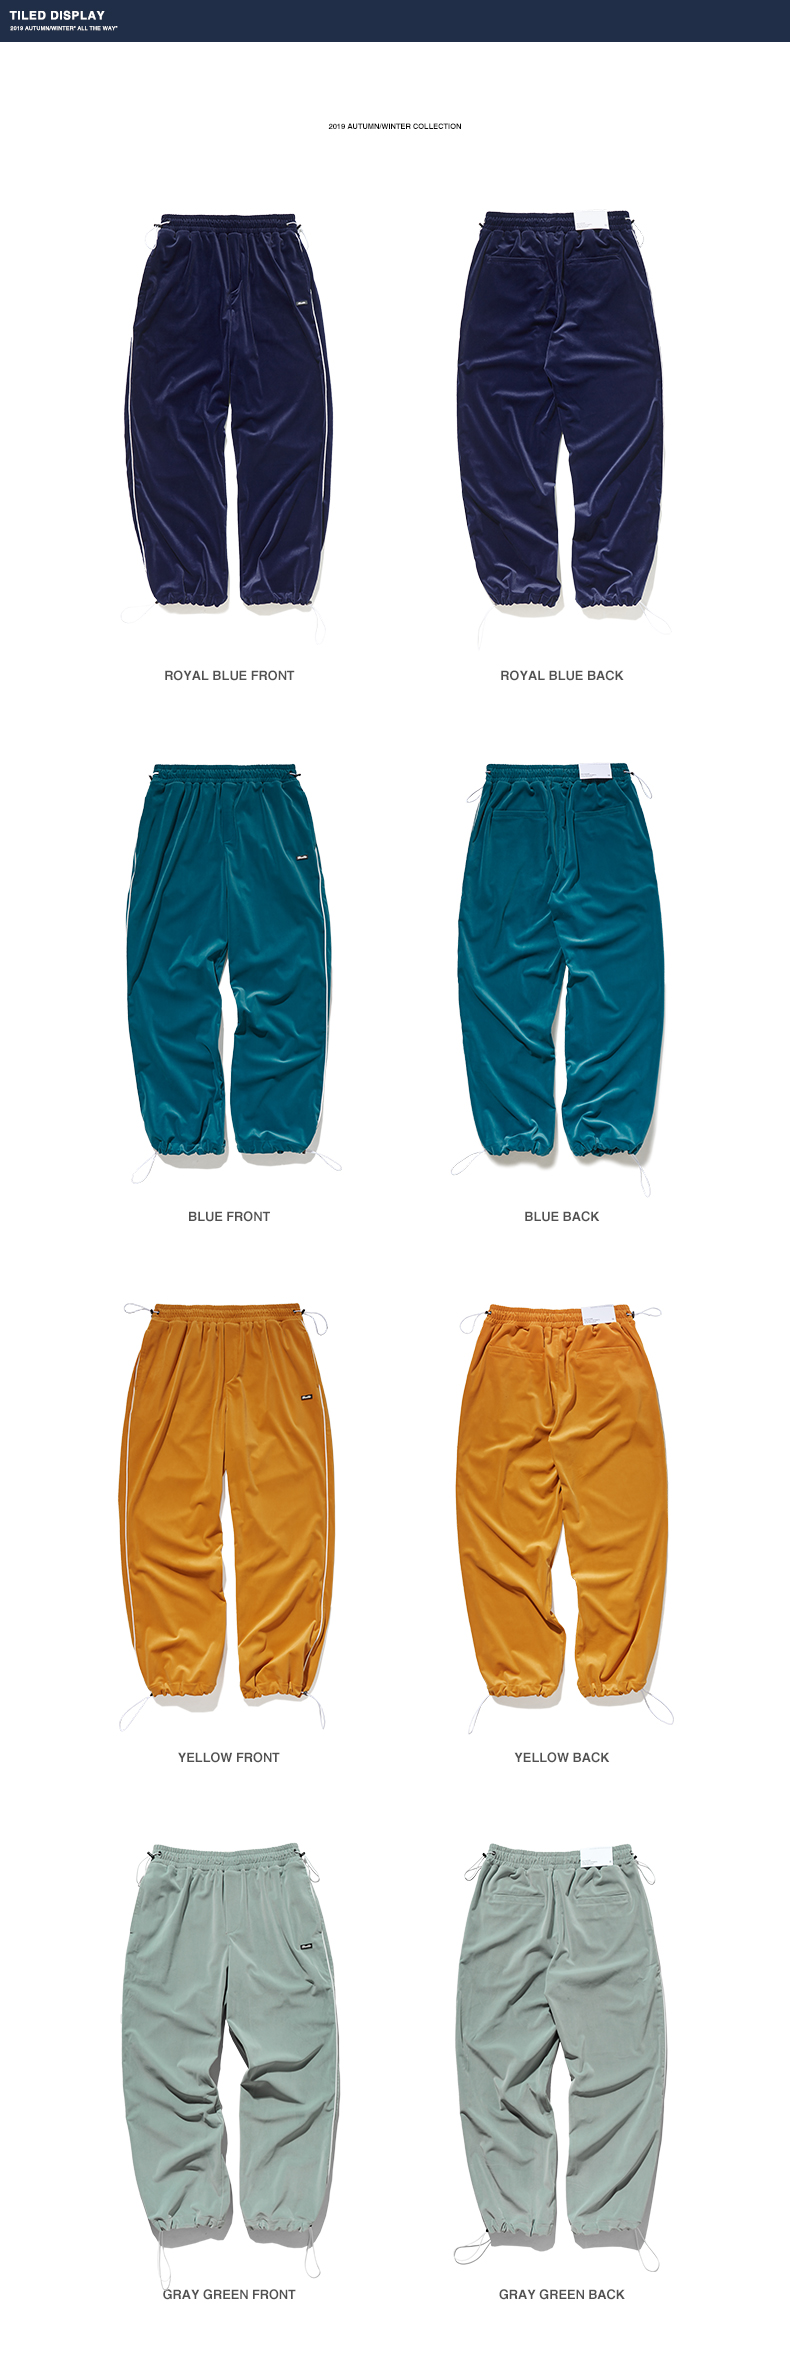 INFLATION 2020 FW Men Track Pants Loose Fit Overalls Solid Color Men Track Pants Streetwear Flannelette Fabric Men Pants 93381W 72